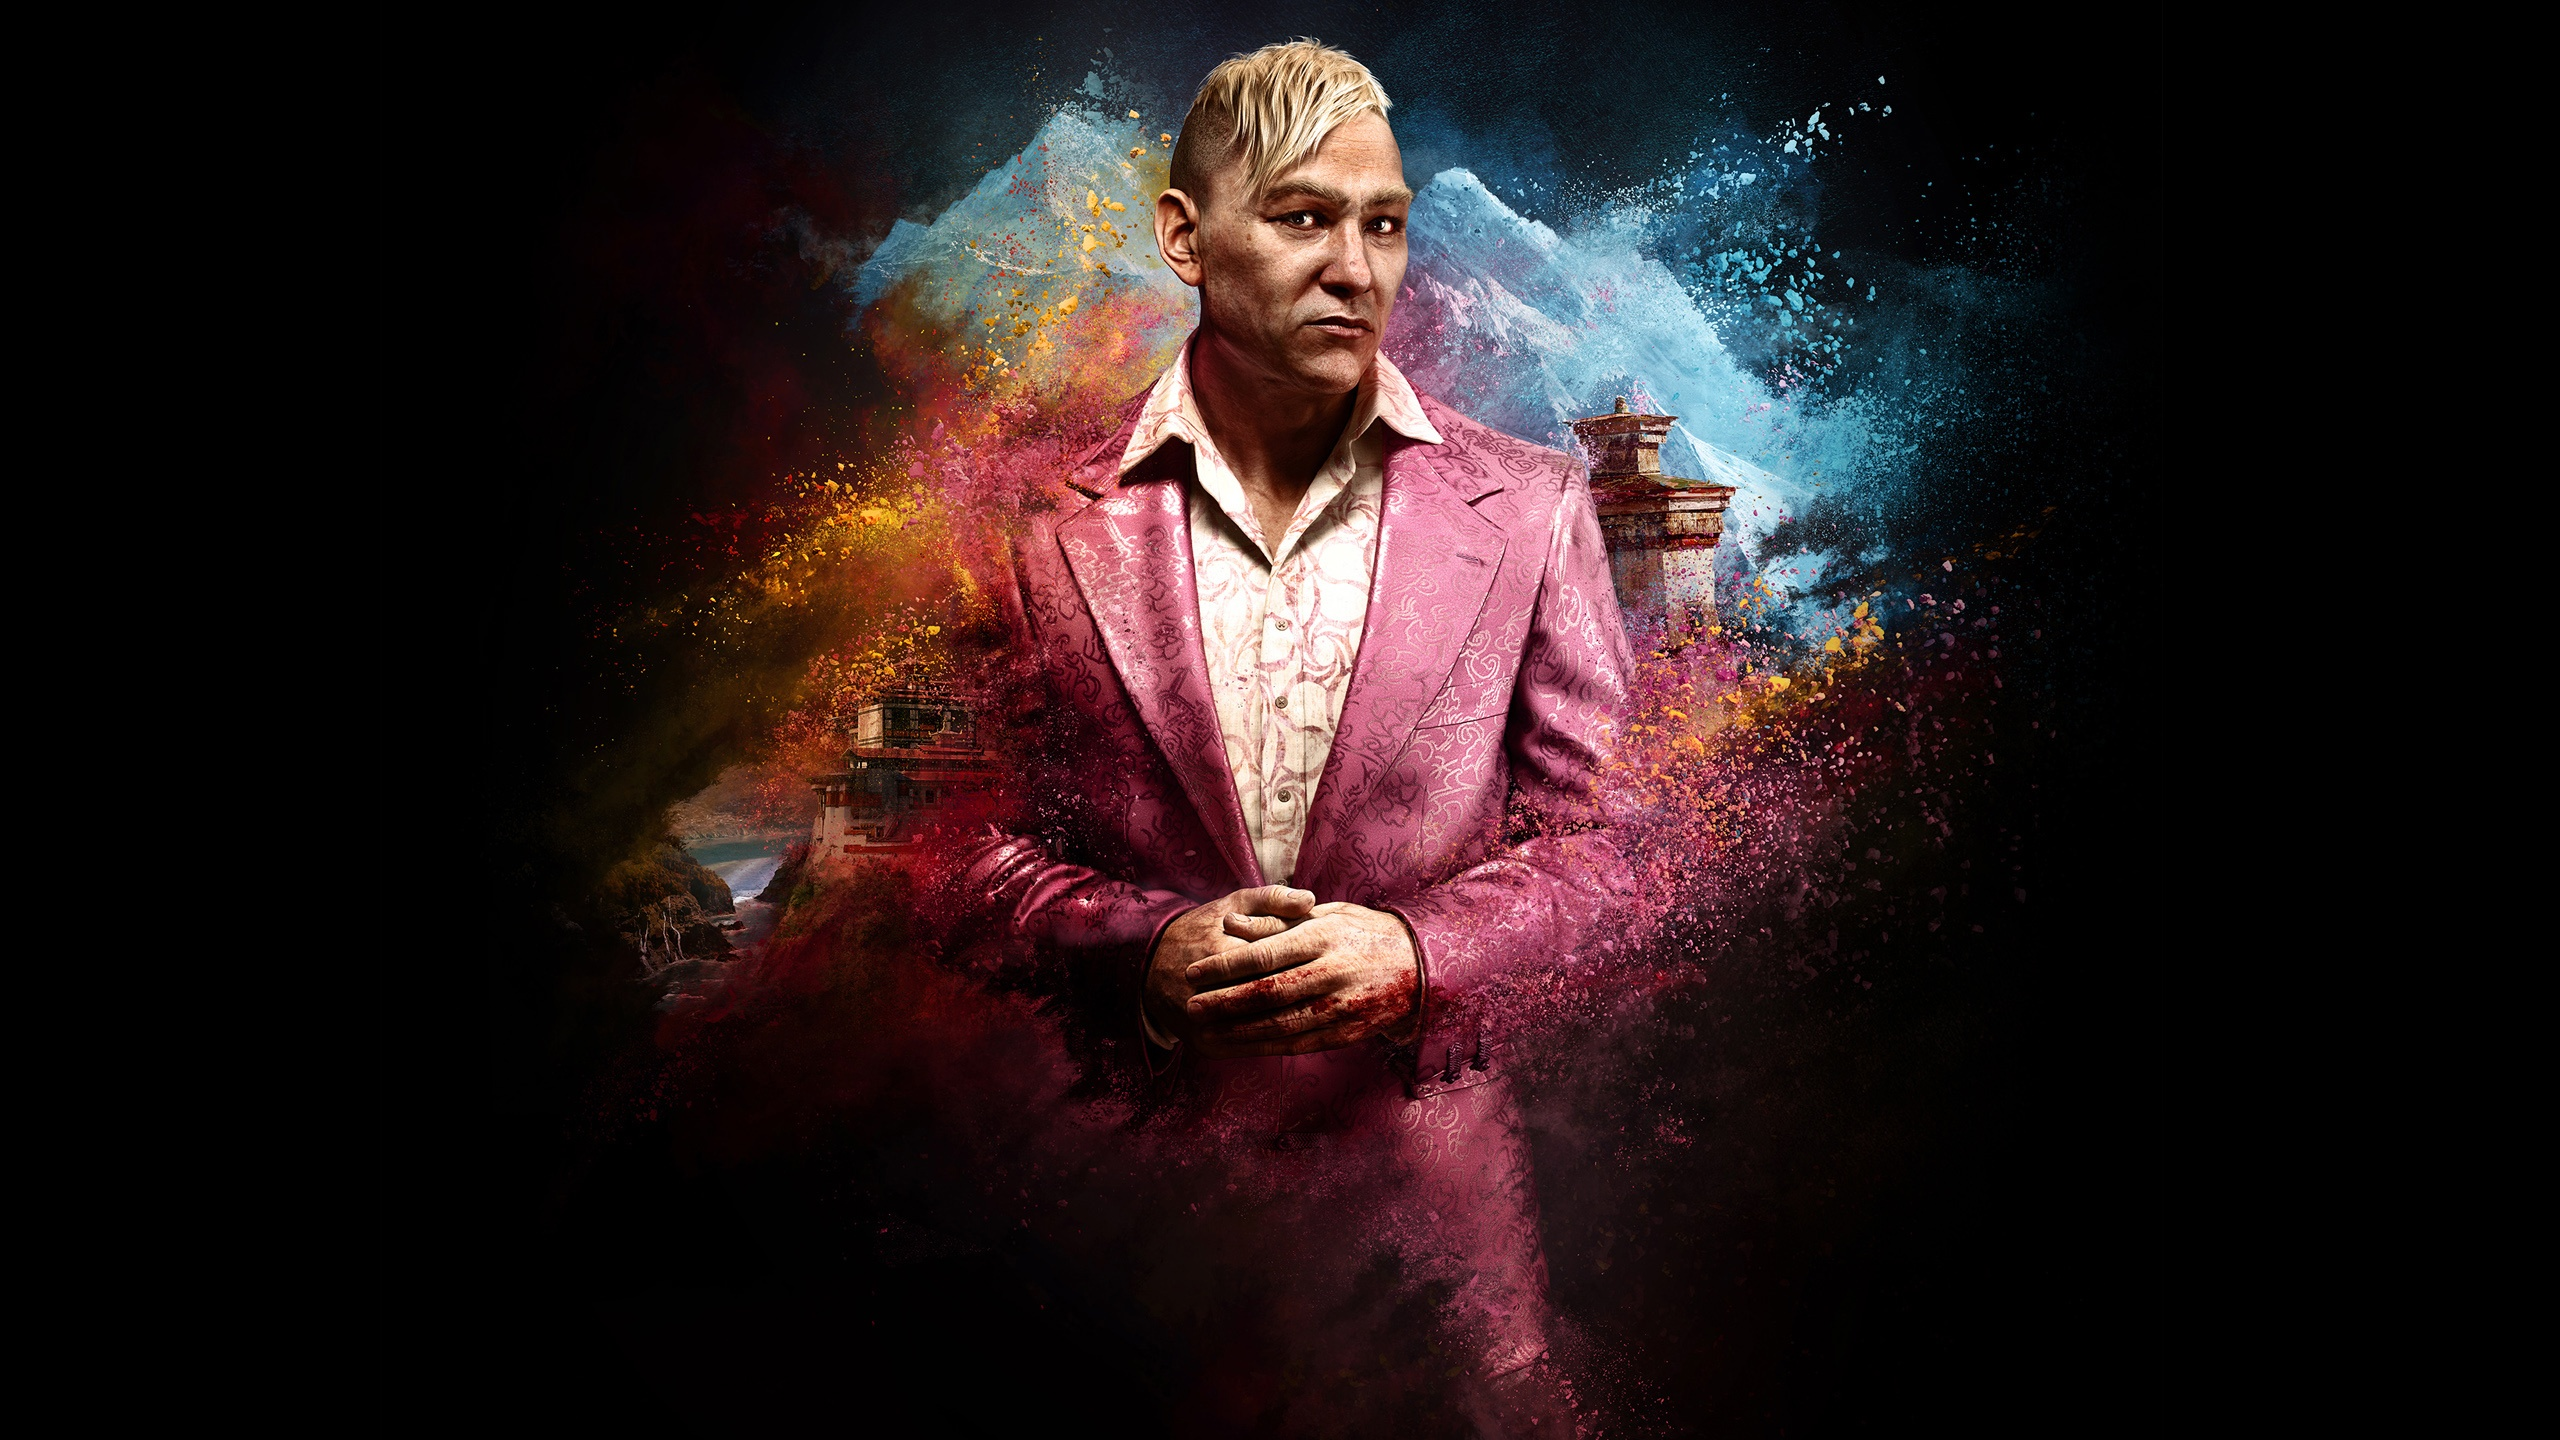 King Pagan Min In Far Cry 4 Wallpapers In Jpg Format For Free Download